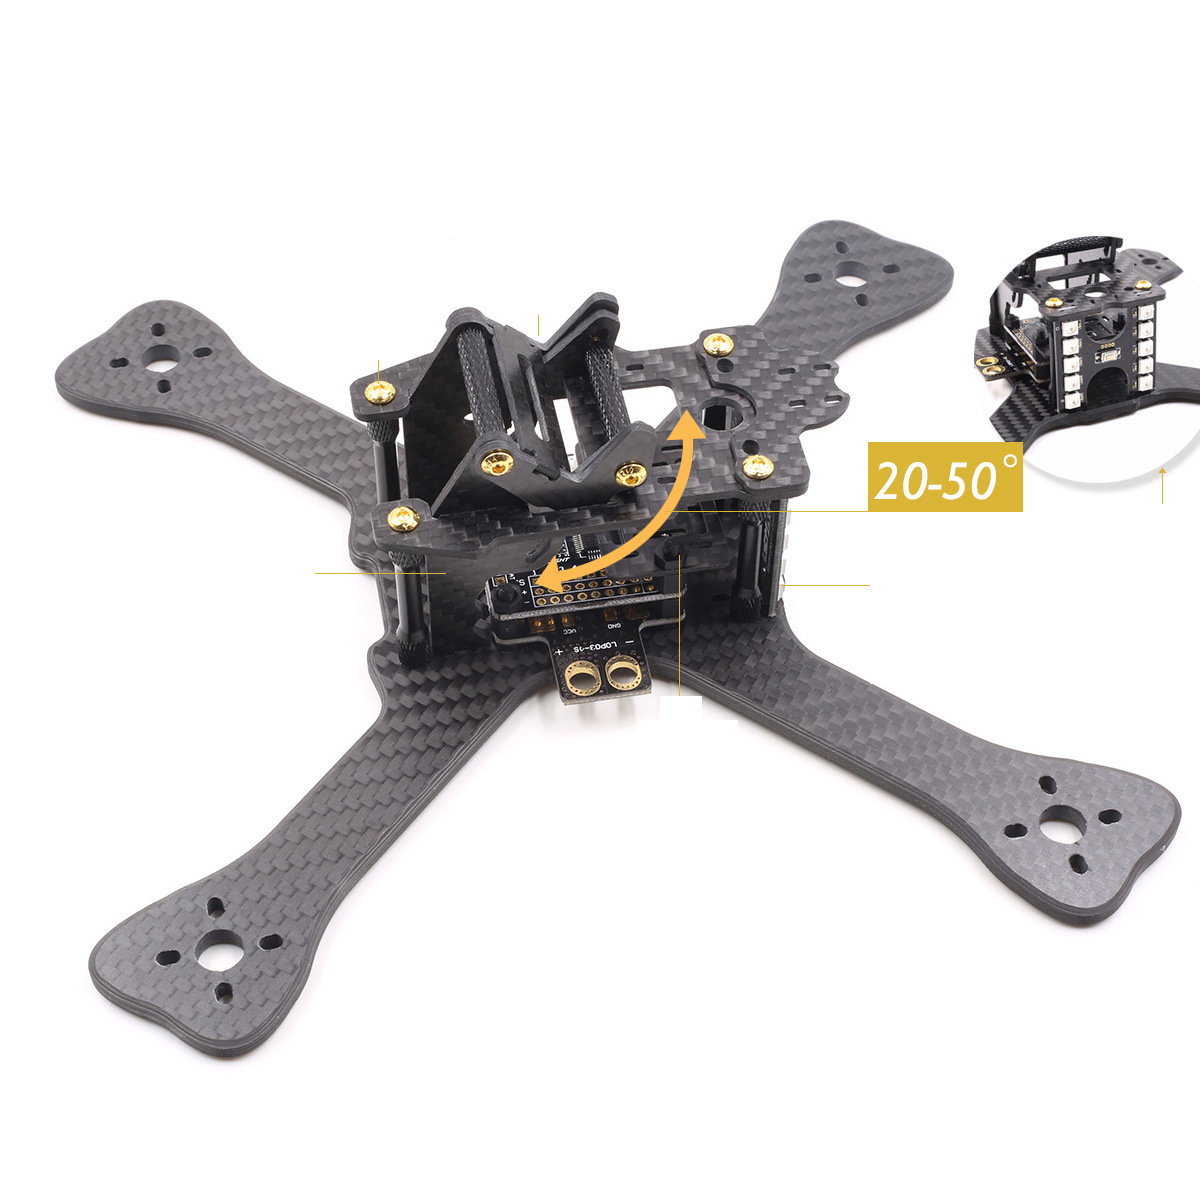 GEPRC GEP-TX5 chimp Mini Racing Through Quadcopter Frame with Carbon Fiber 4mm Plate/PCB/BEC XT60 4-axis Aircraft geprc gep zx4 gep zx5 gep zx6 170mm 190mm 225mm 4 axis 3k carbon fiber frame kit with 12v 5v pdb board for rc multicopter